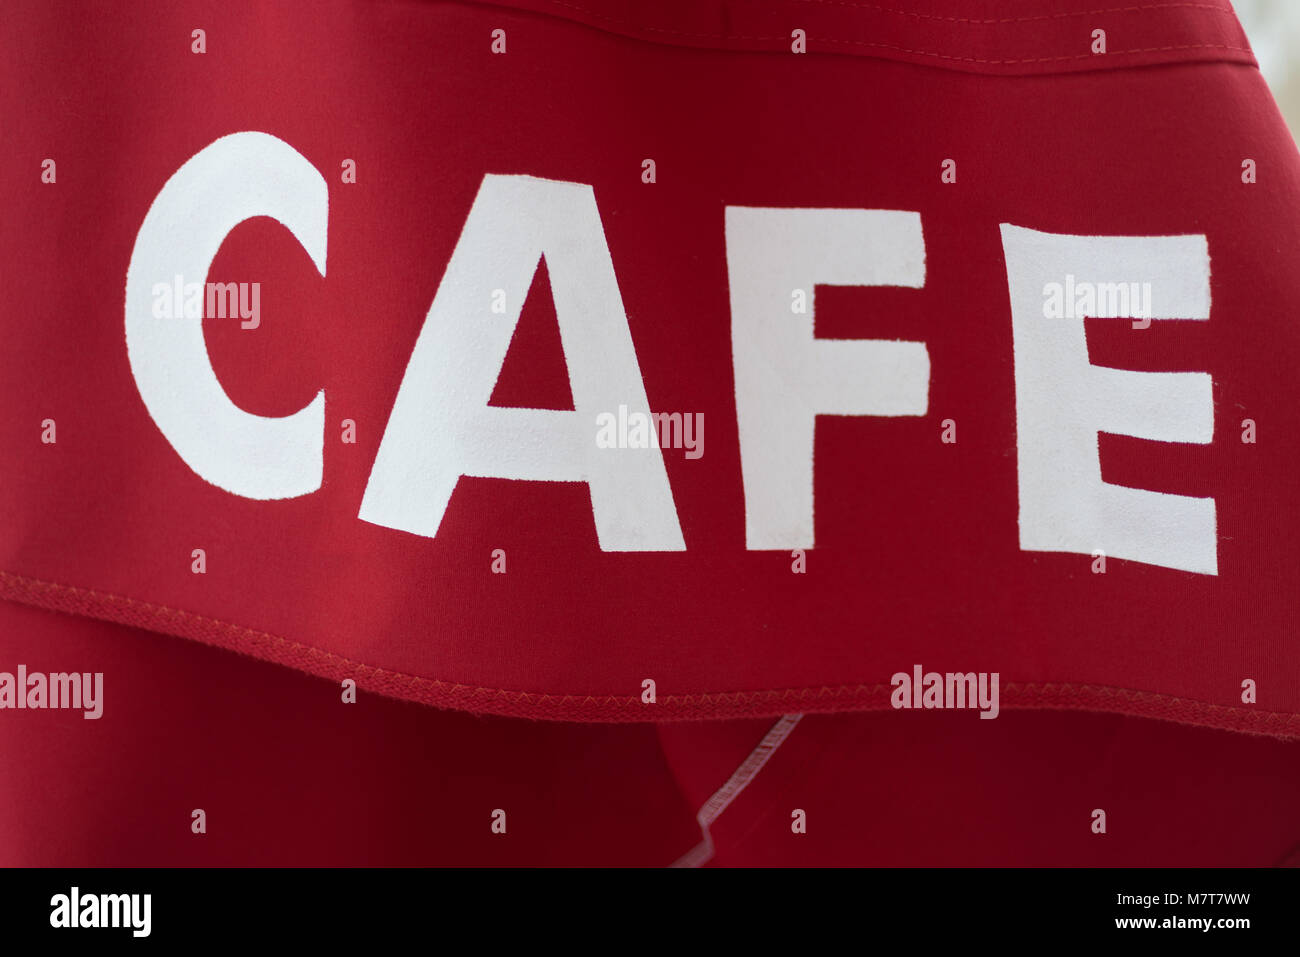 bright red and white cafe sign banner on cloth material - Stock Image